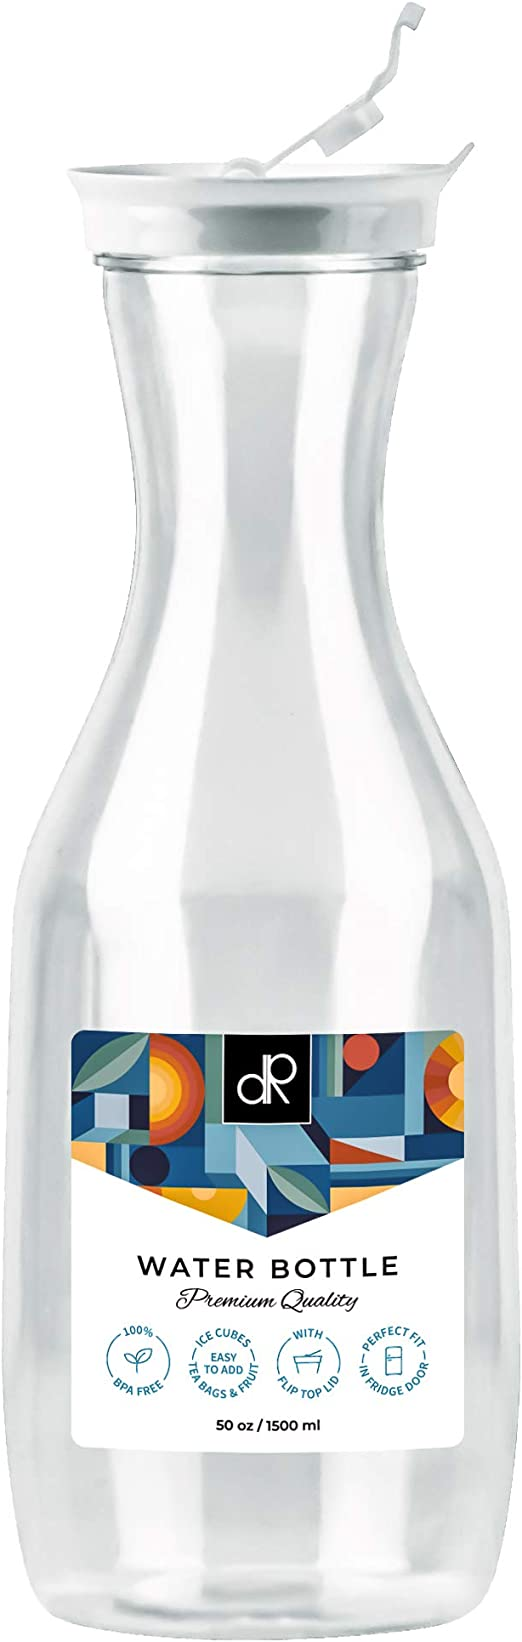 DecorRack Large Water Carafes, Bottle with Black Top Lid, 50 Oz Plastic Juice Pitcher, Decanter, Jug, Serve Fridge Cold Iced Tea, Water, for Outdoors, Picnic, Parties (1 Pack White Top)